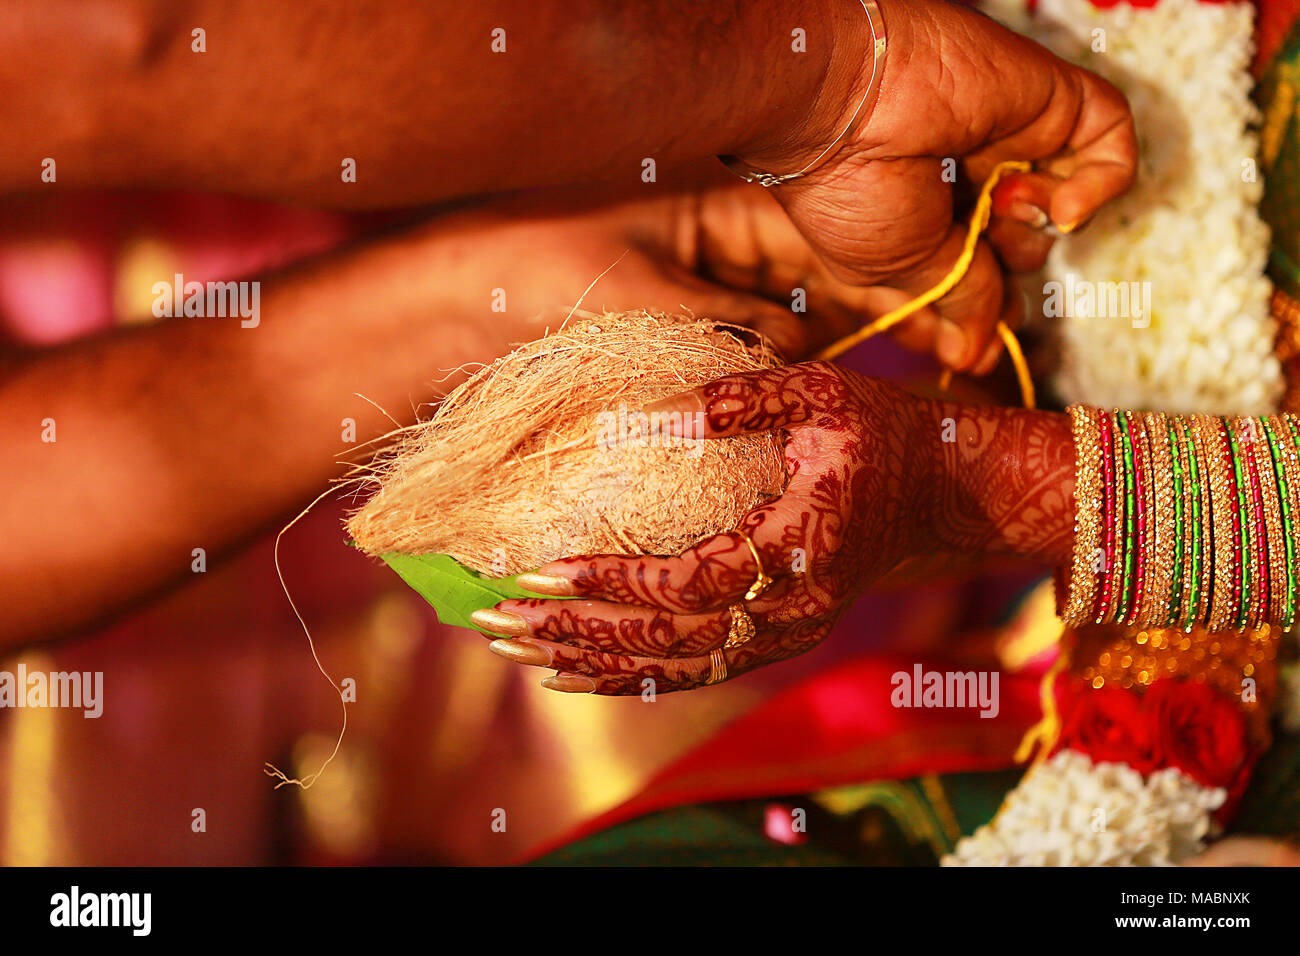 Closeup hand South Indian wedding rituals, ceremony - Stock Image